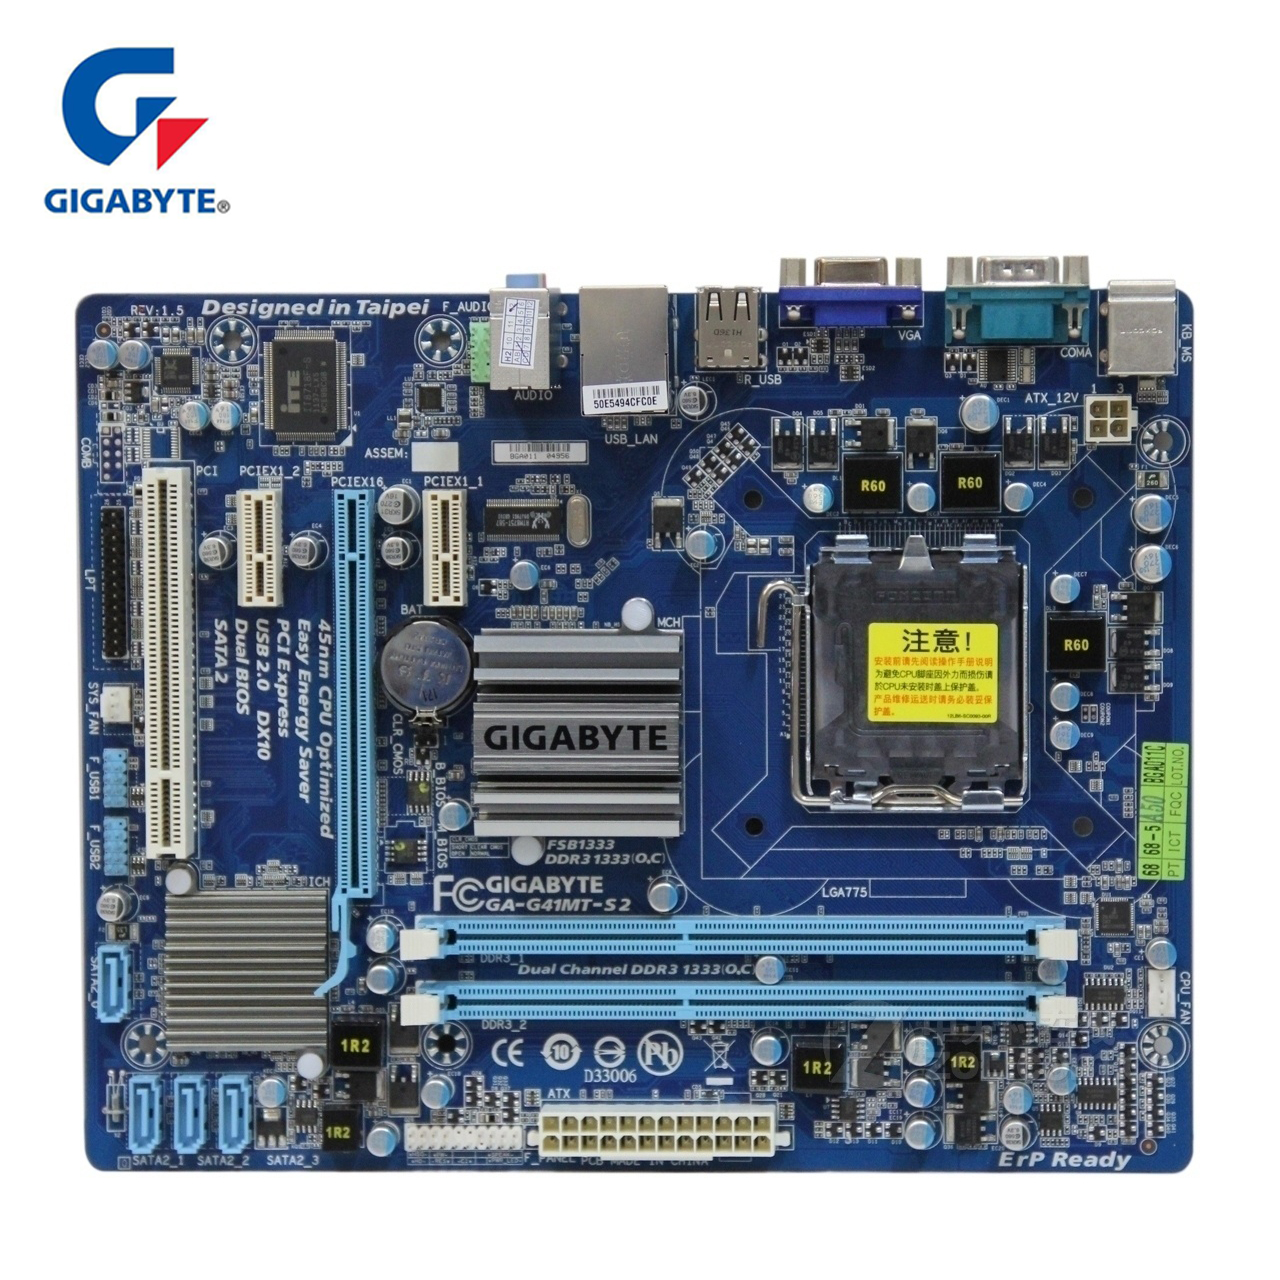 Gigabyte GA-G41MT-D3P VIA Audio Windows Vista 32-BIT